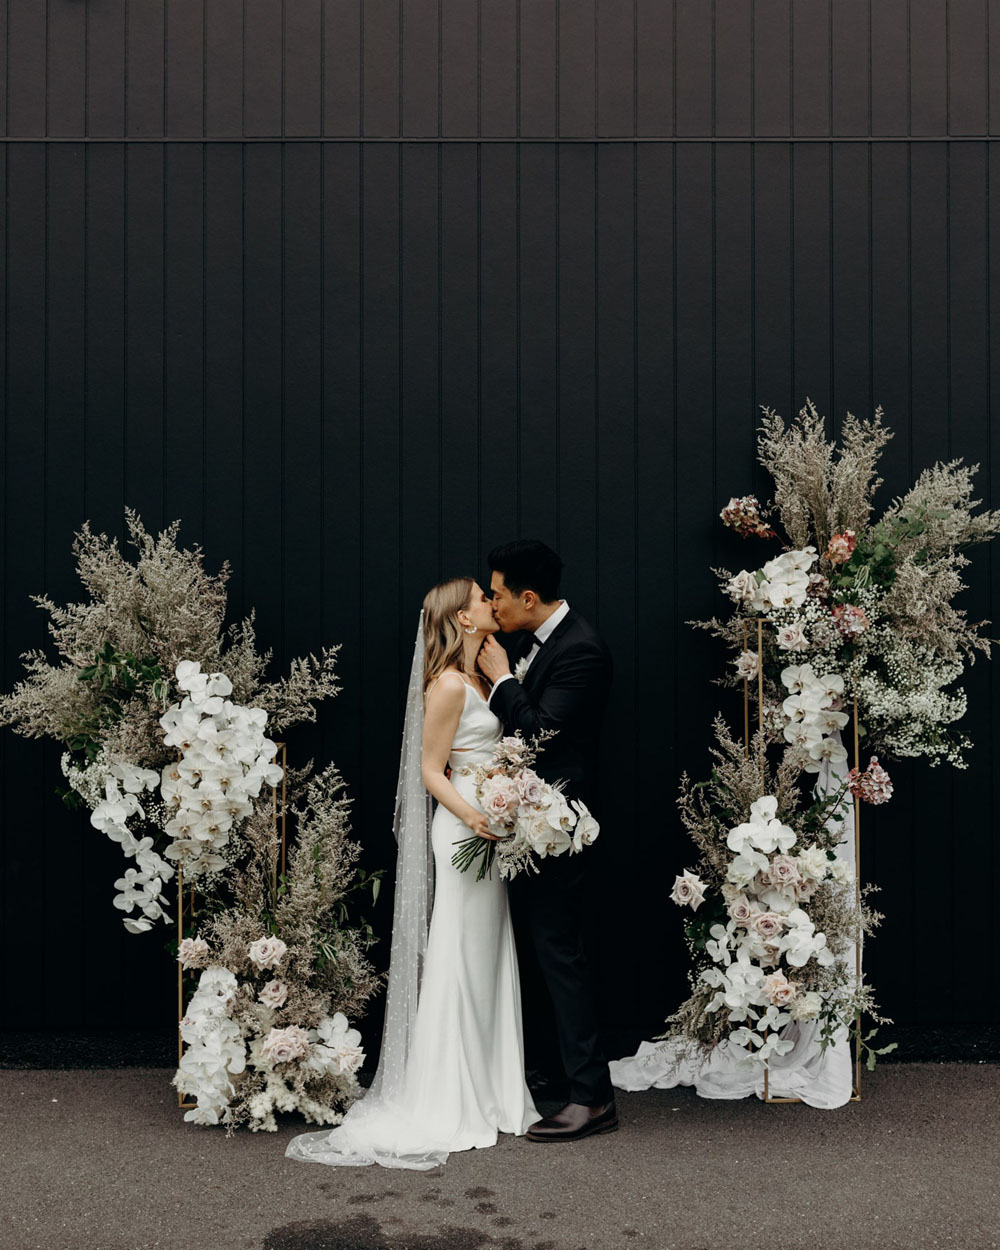 The pretty neutrals and florals in this Australian wedding will have you swooning